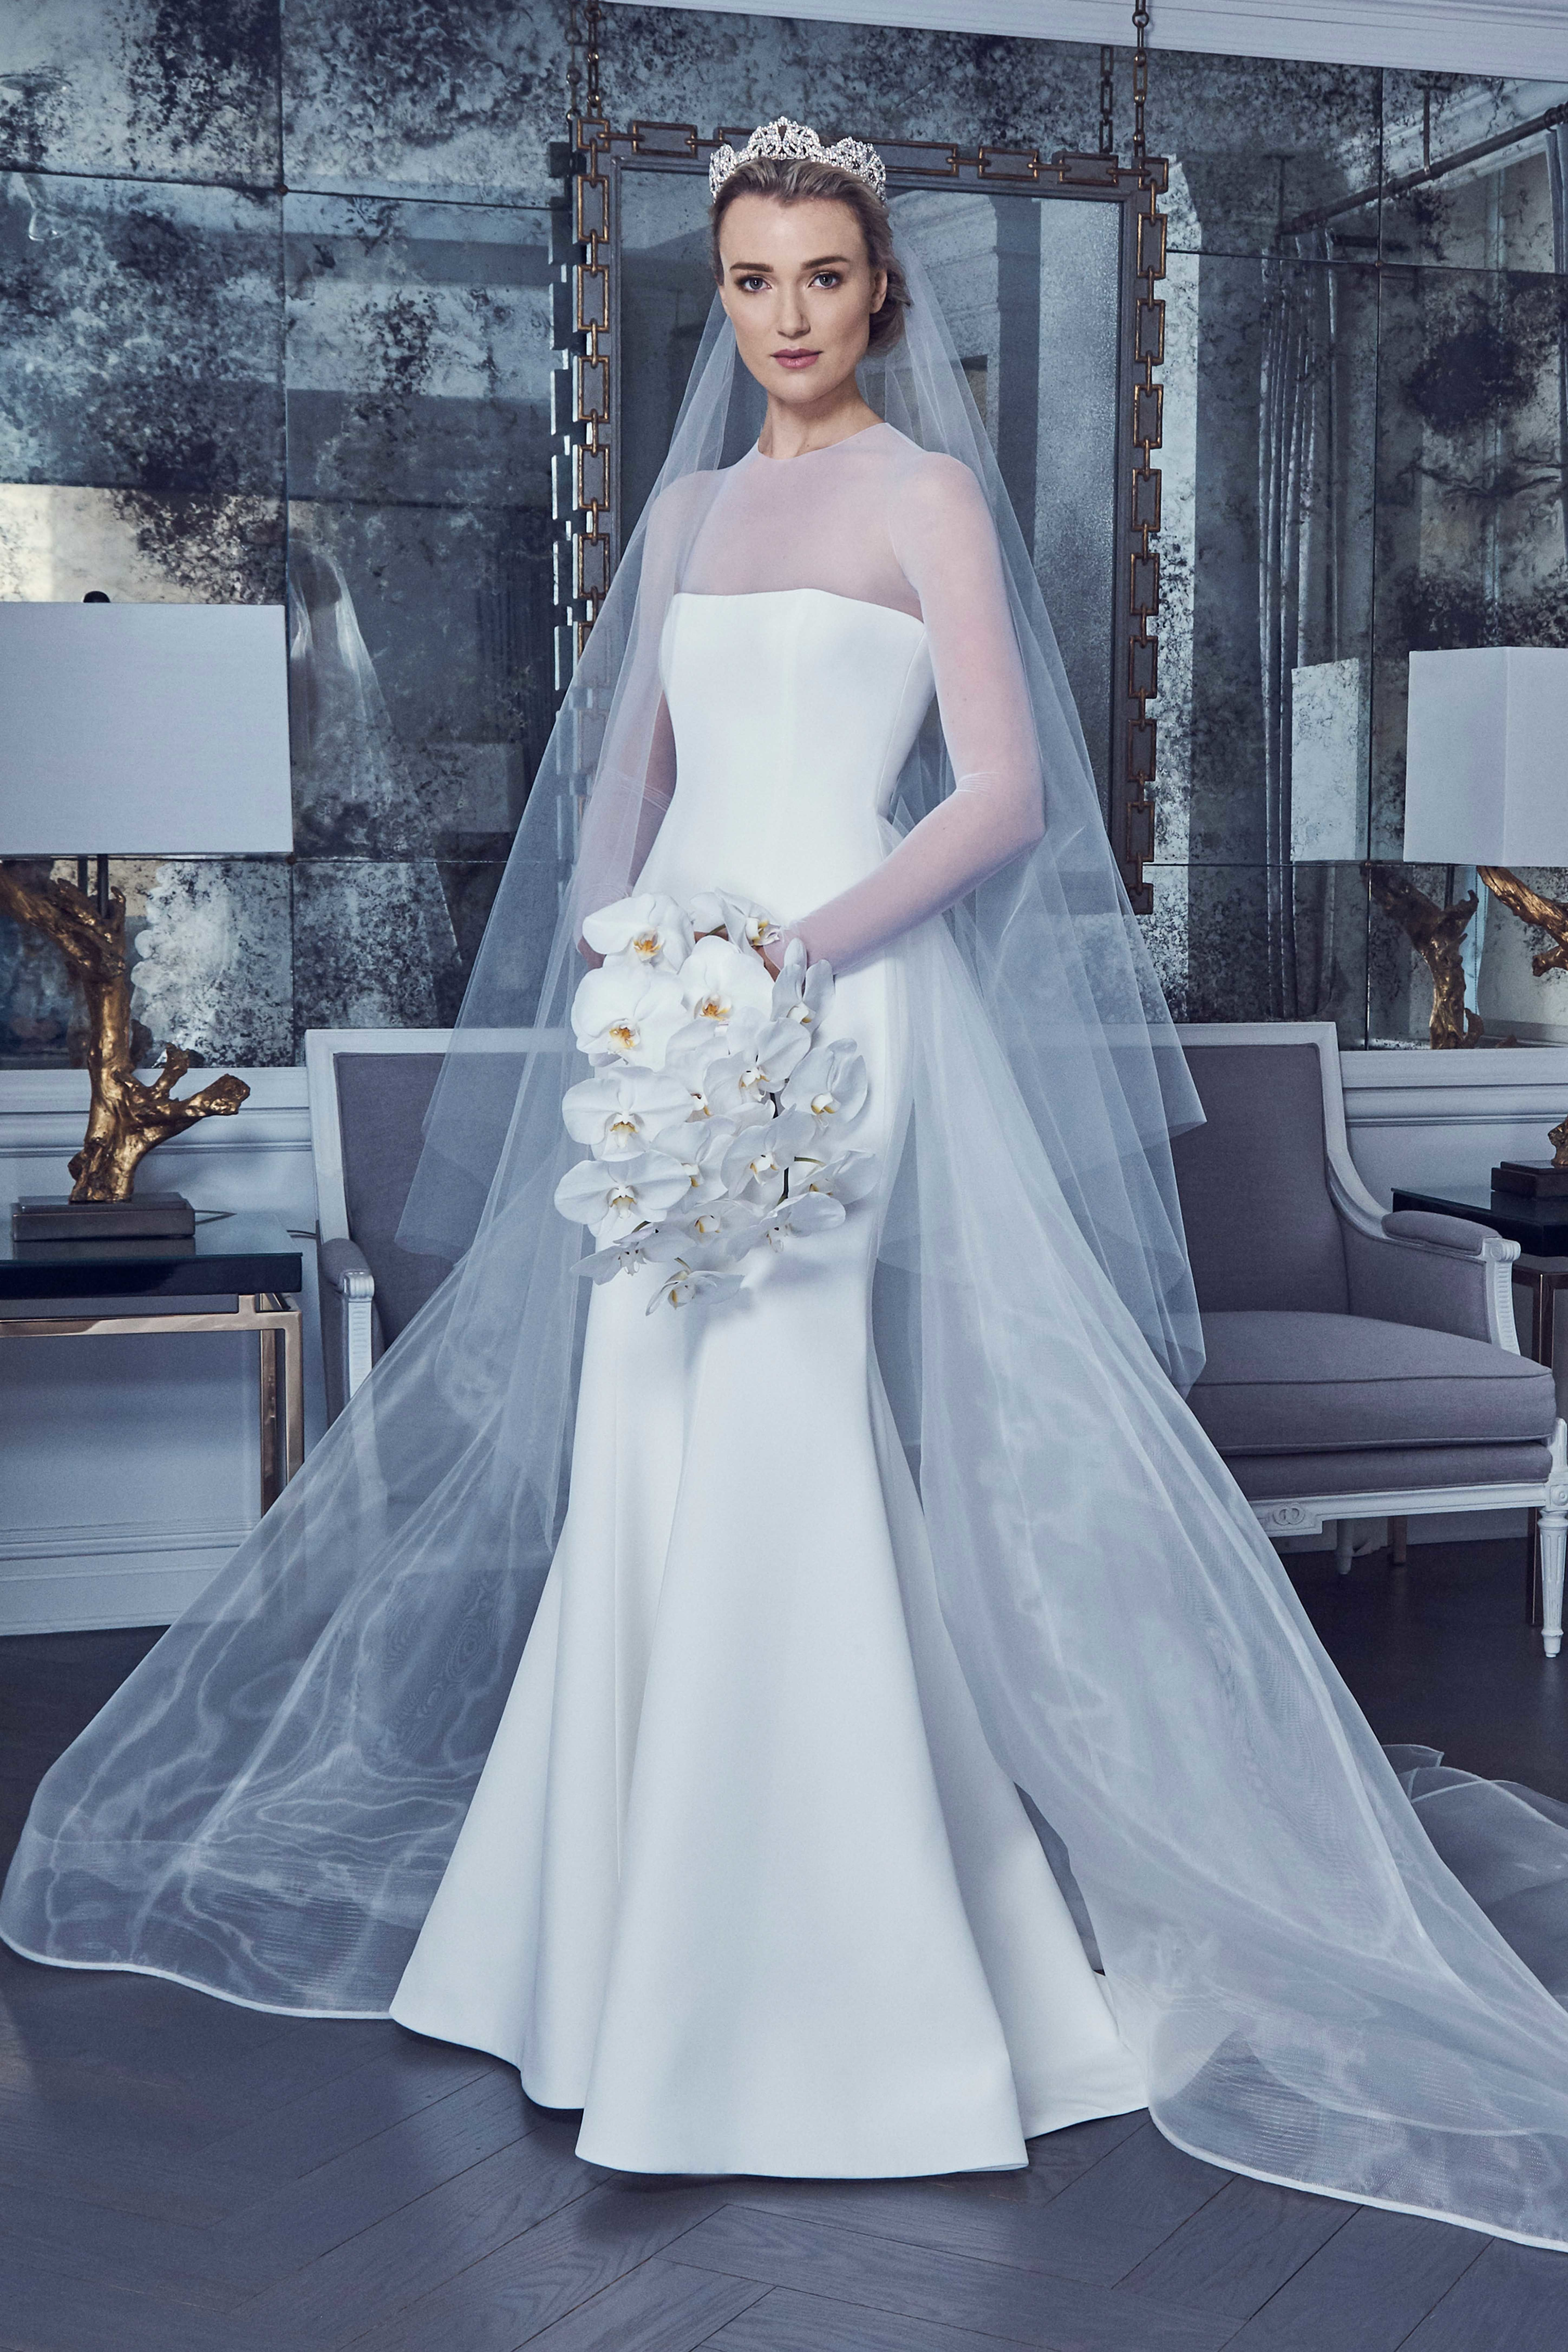 f88b27ba6e13 Wedding Dresses OR NOT! The Only Wedding Dress Trends 2019 Brides Need to  Know!